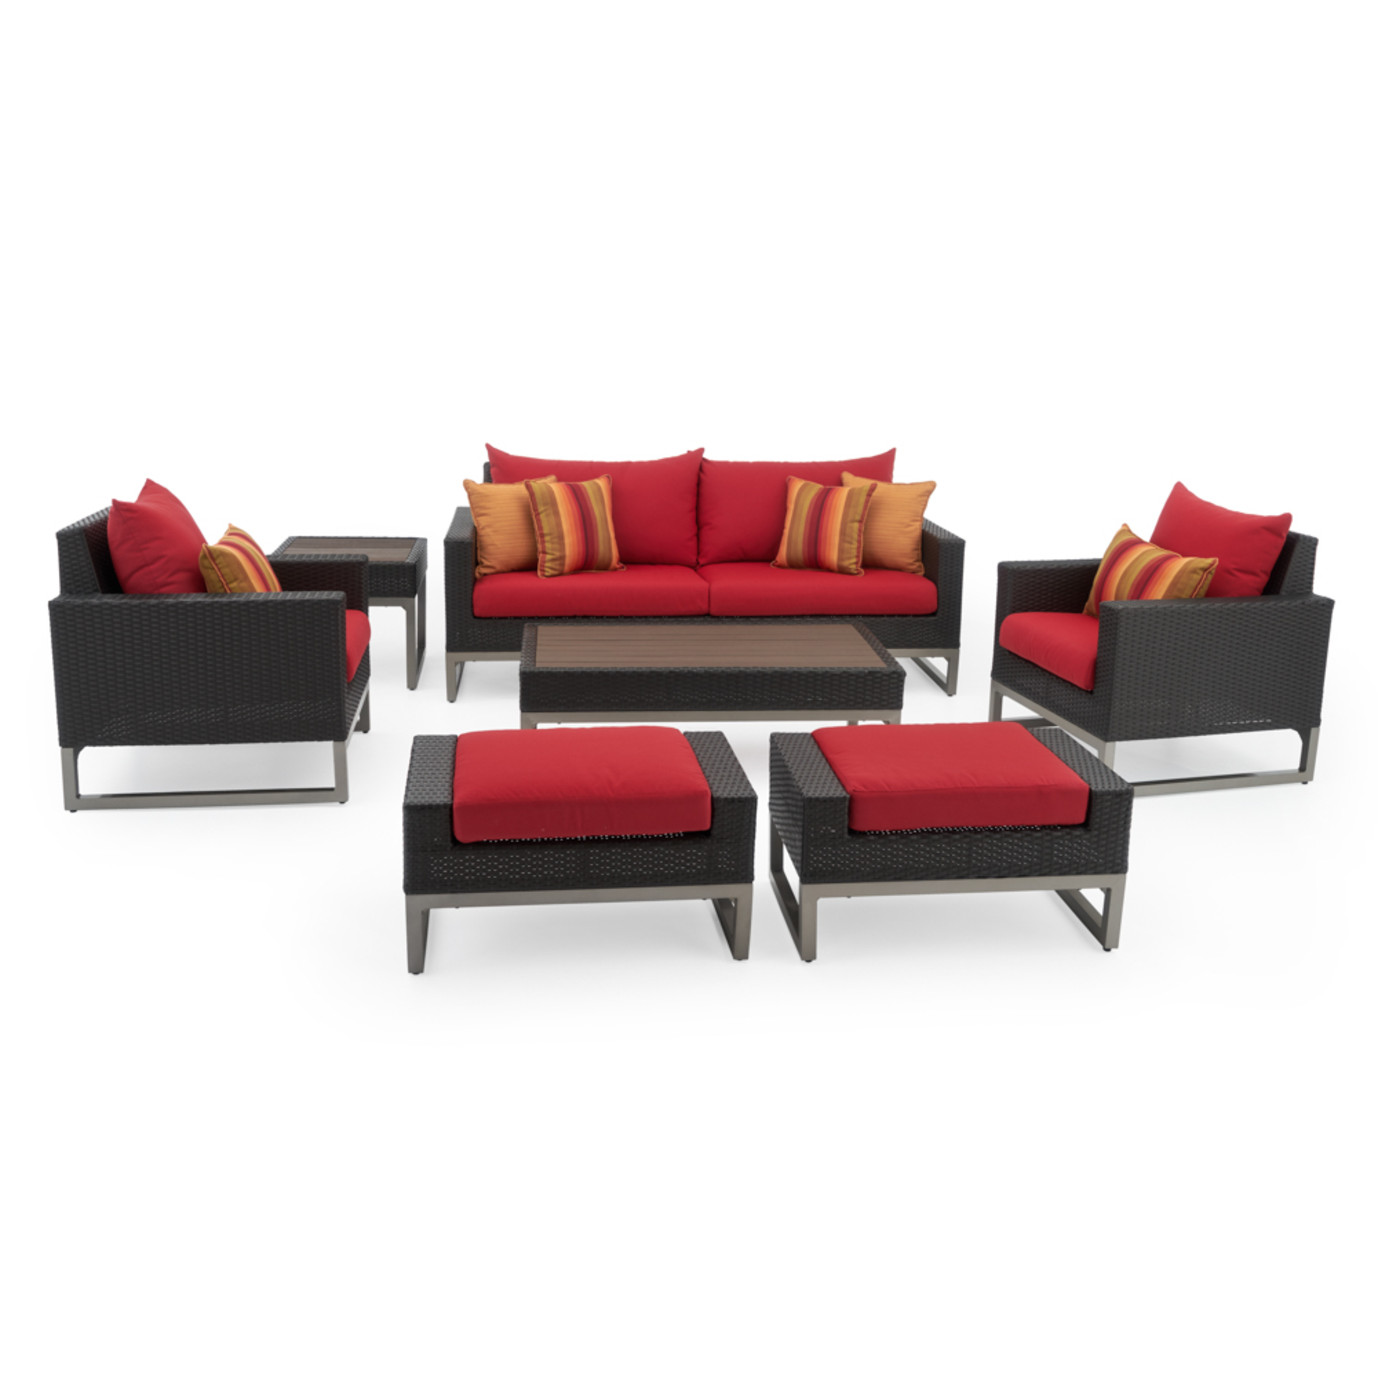 Milo™ Espresso 7 Piece Deep Seating Set -Sunset Red